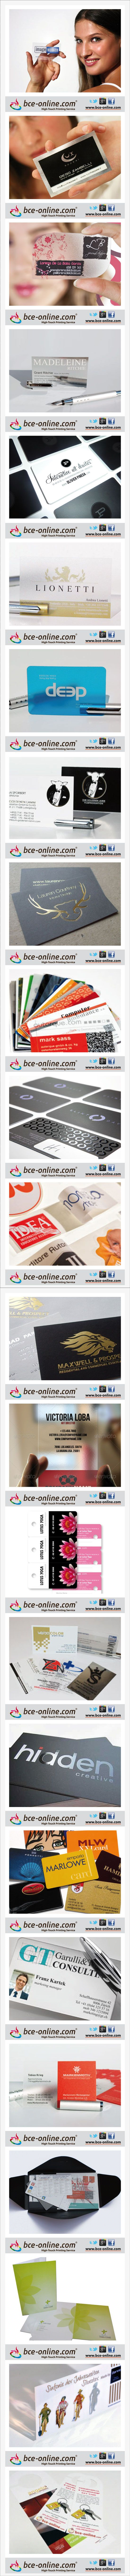 Clear Business Cards Gallery http://www.bce-online.com/en